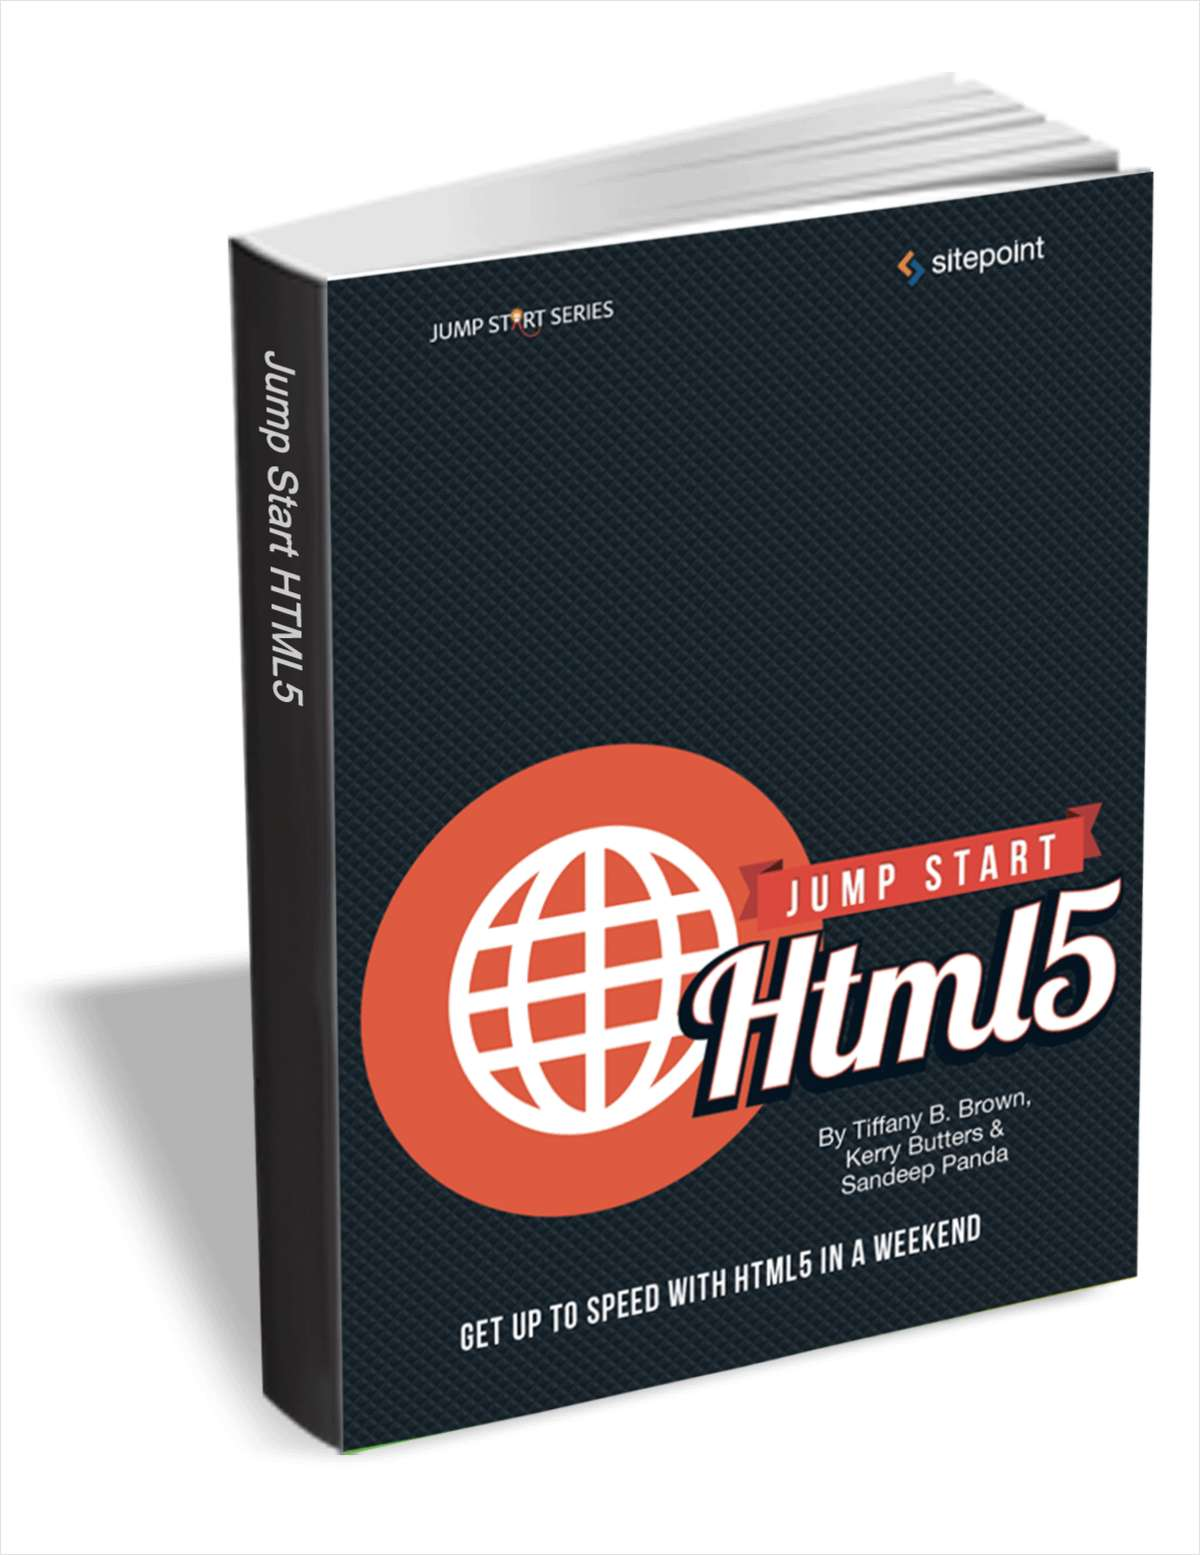 Jump Start HTML5 (A $30 Value) Free!